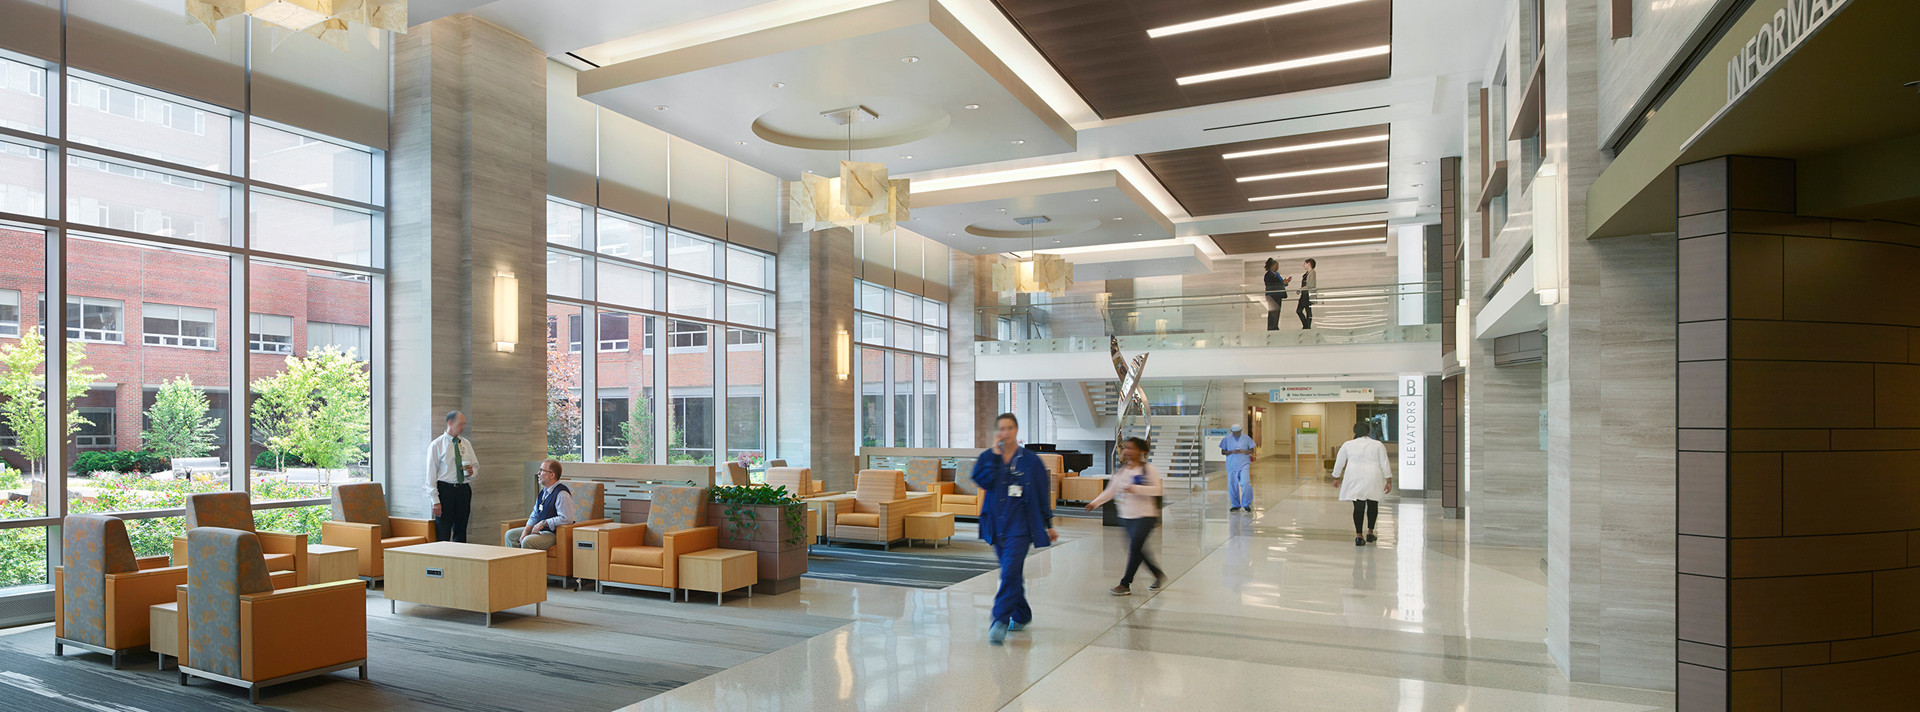 Sibley Memorial Hospital: The New Sibley